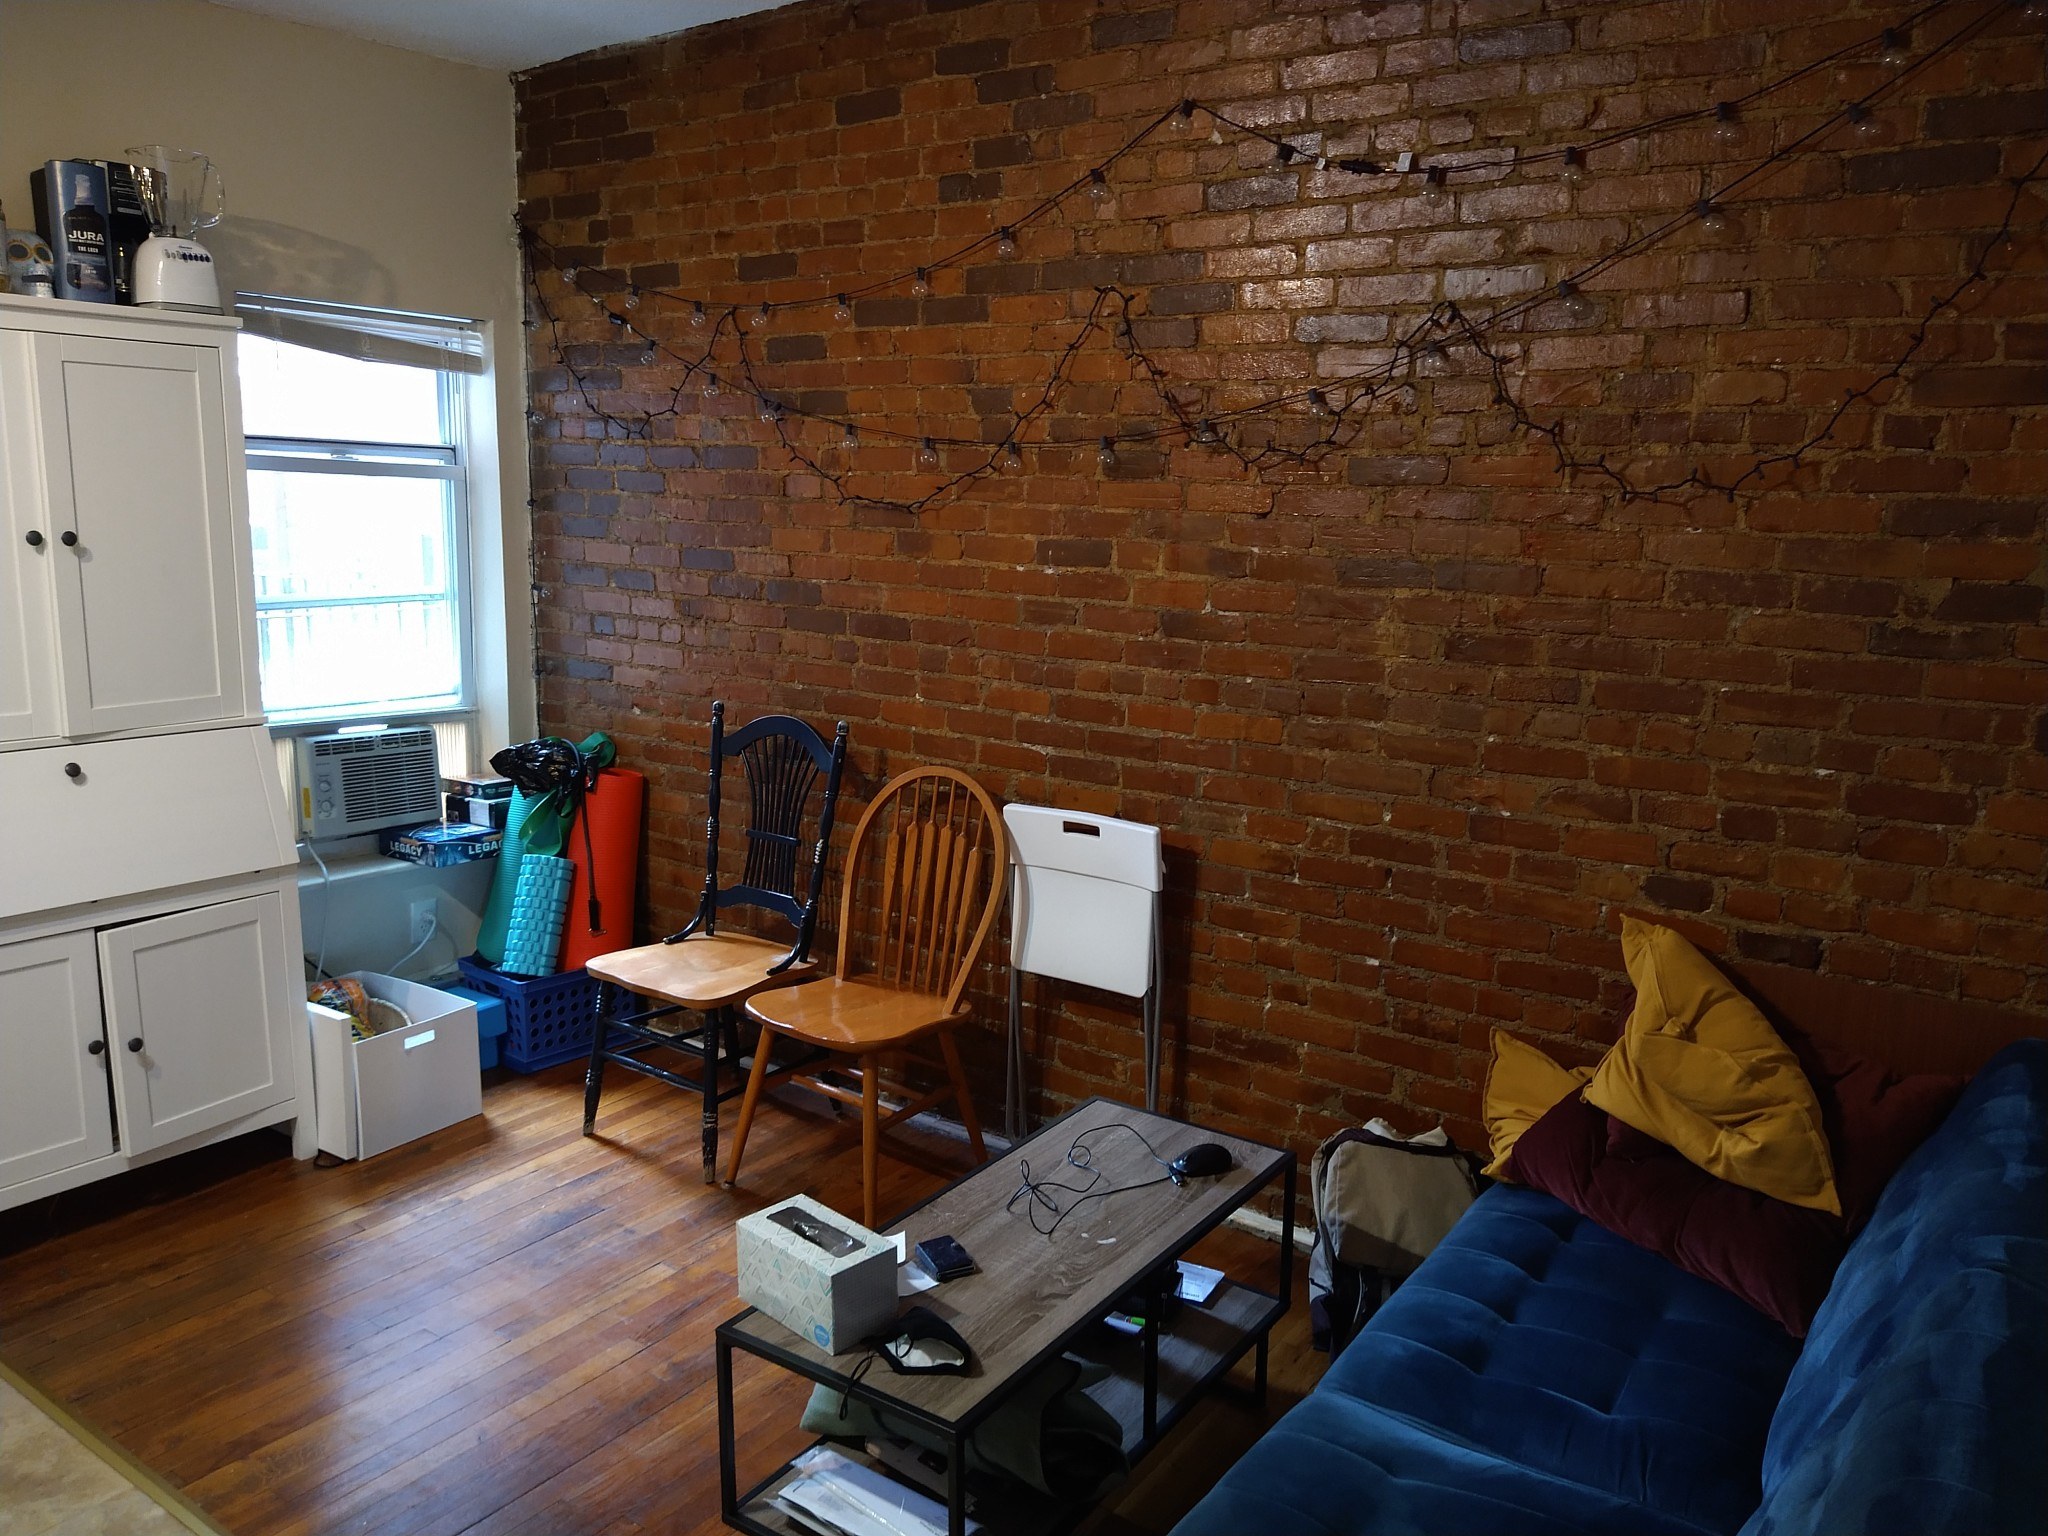 2 Beds, 1 Bath apartment in Boston, Mission Hill for $2,195